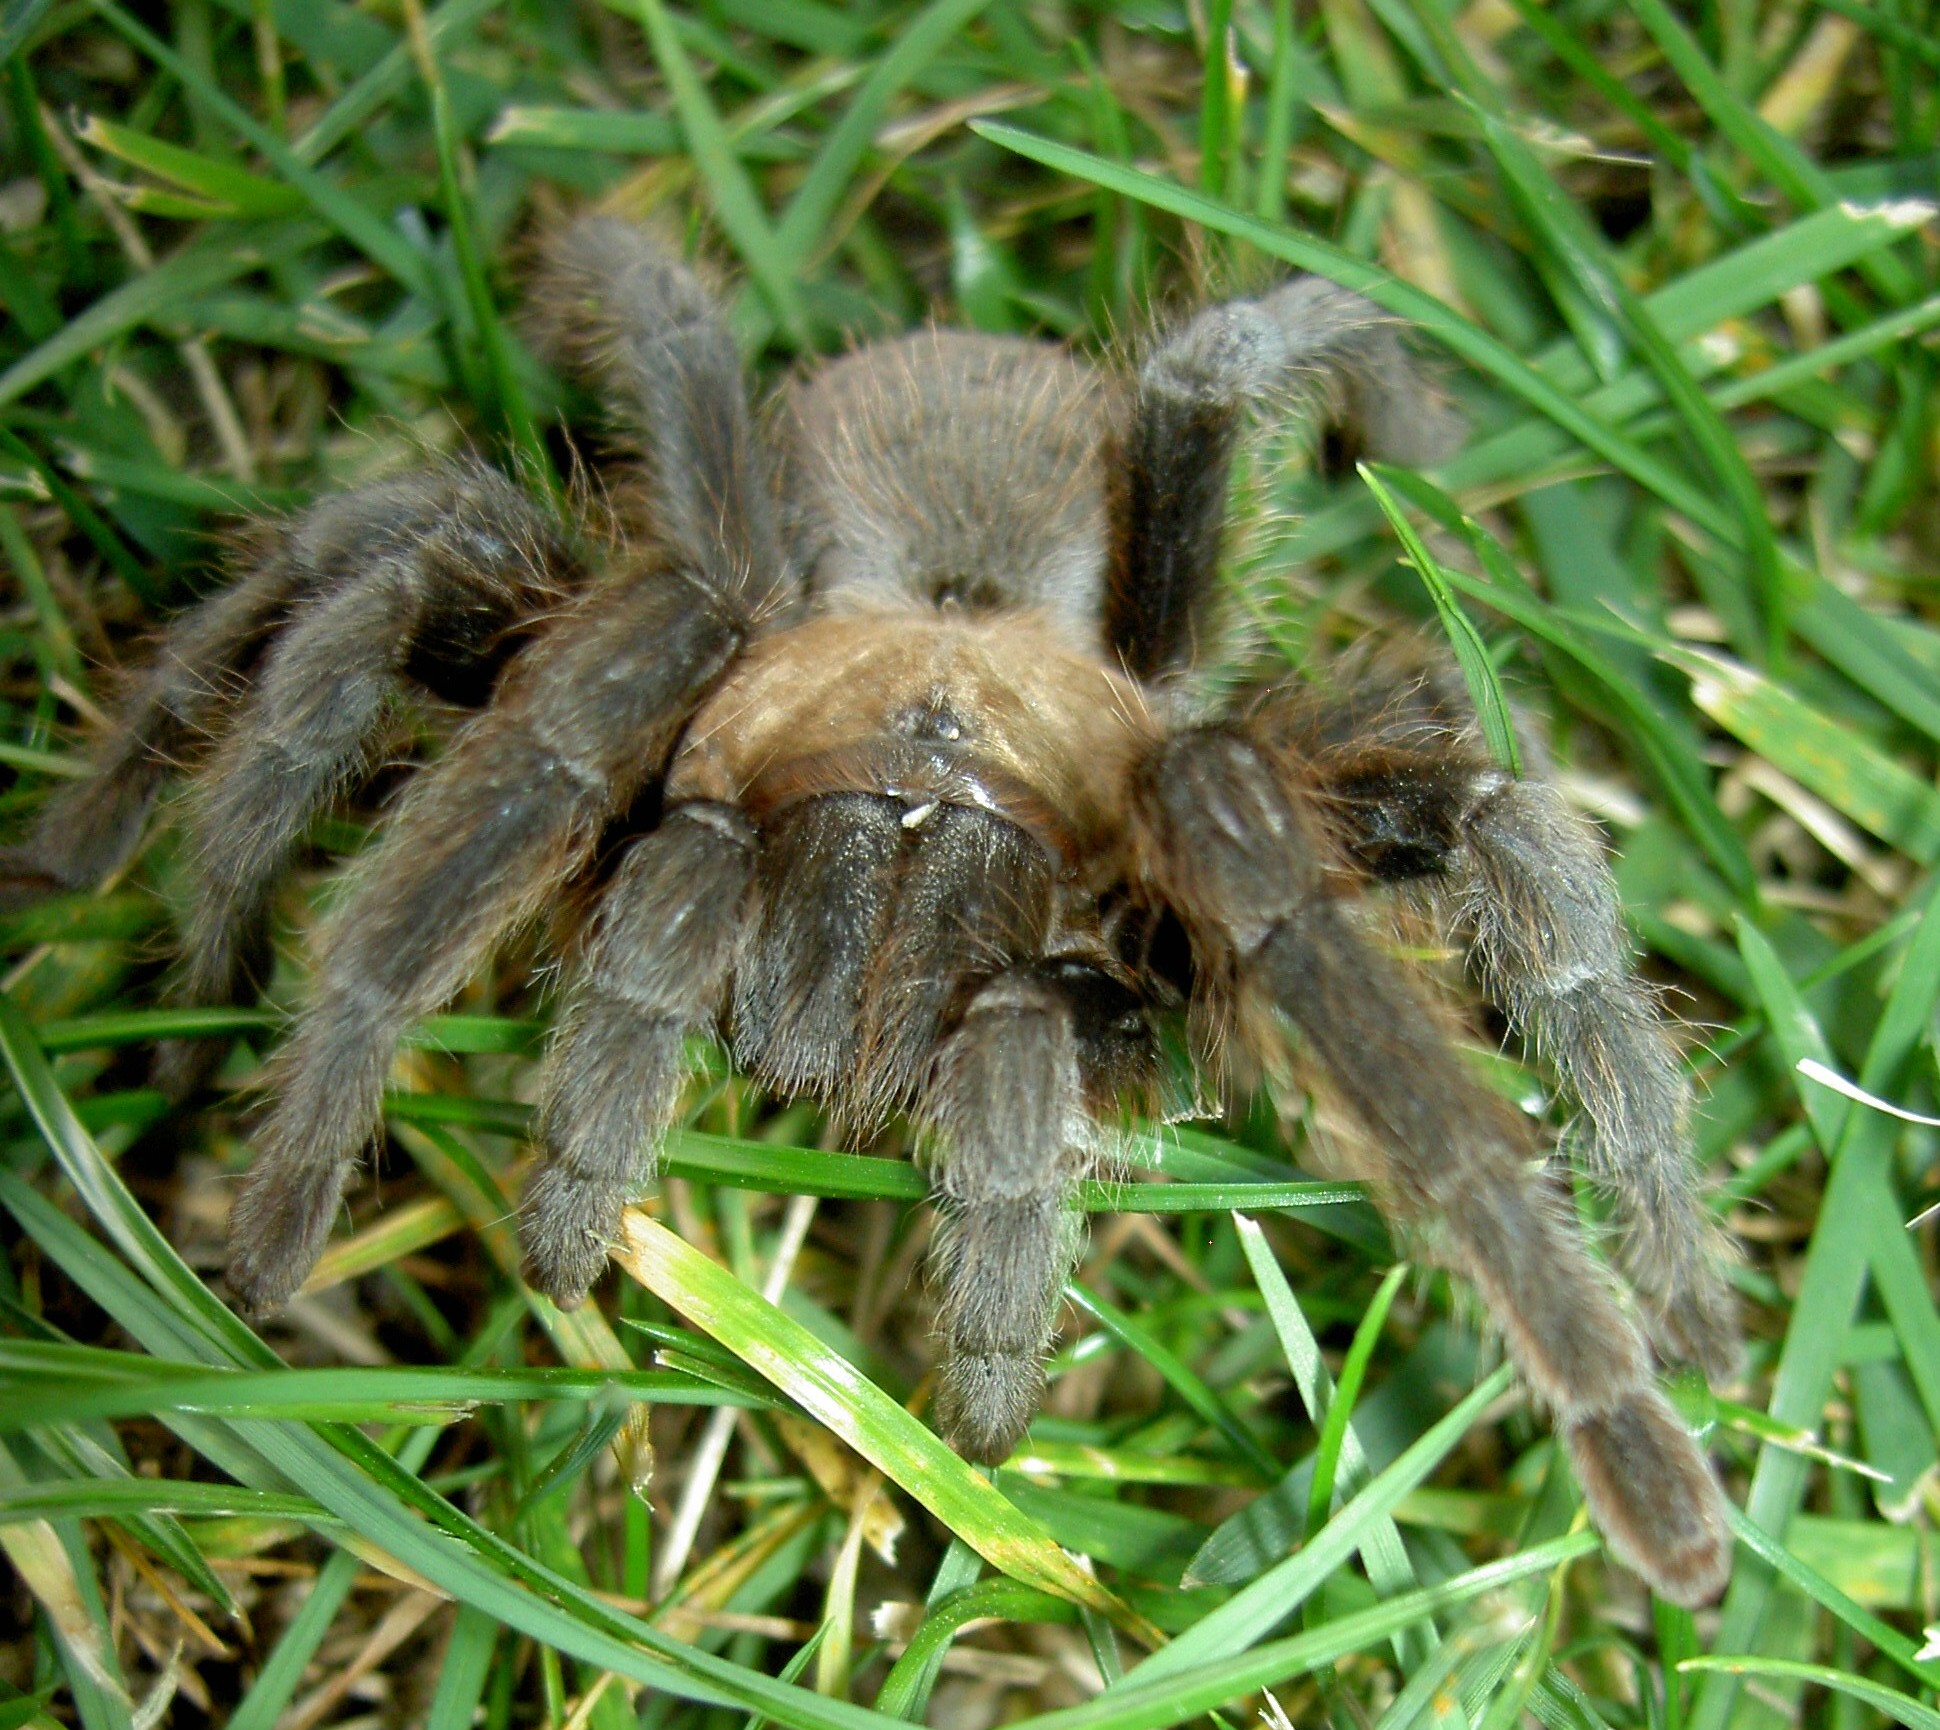 A Good Dose of Spider Poison: Tarantula Venom at Home and on the Farm